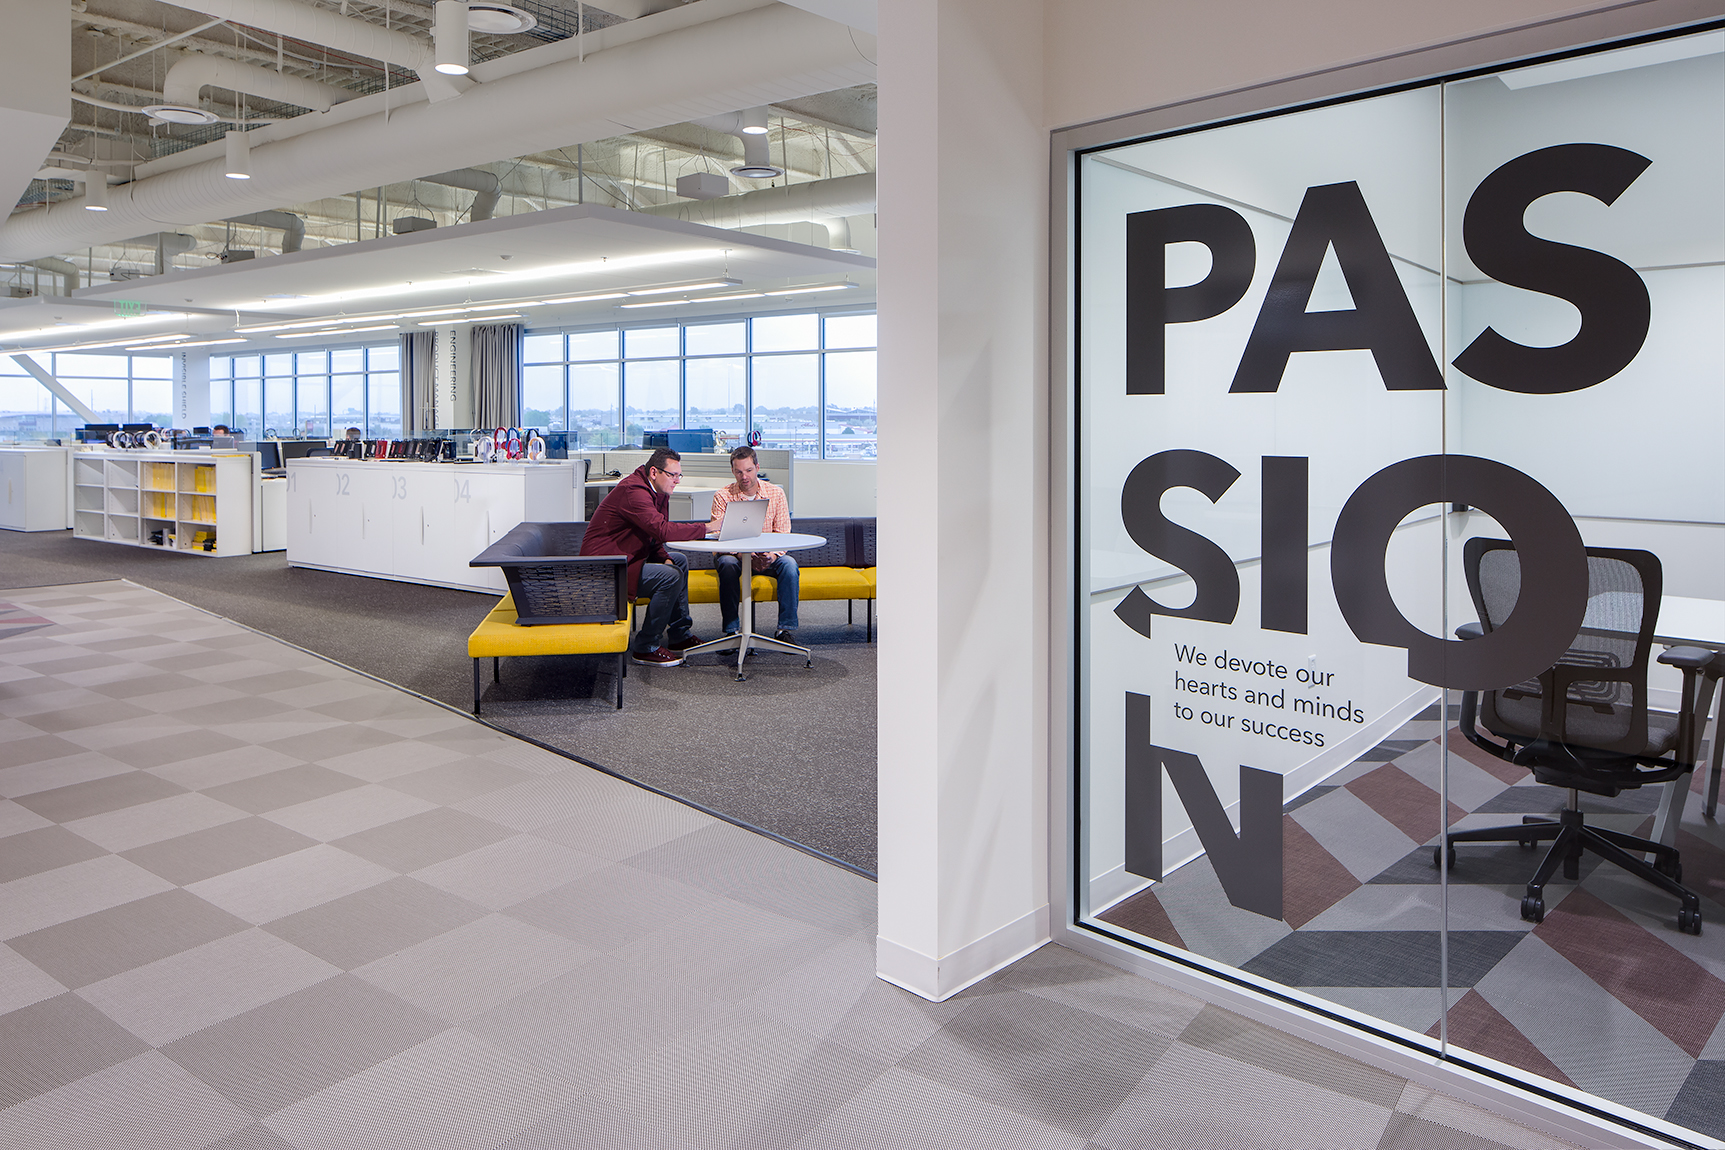 In the foreground of this photograph is a conference room with a glass enclosing wall with the words {quote}PASSION{quote} adhered to them. in the background, two employees are workingat a table in an open workspace filled with cubicles, other employees and product.